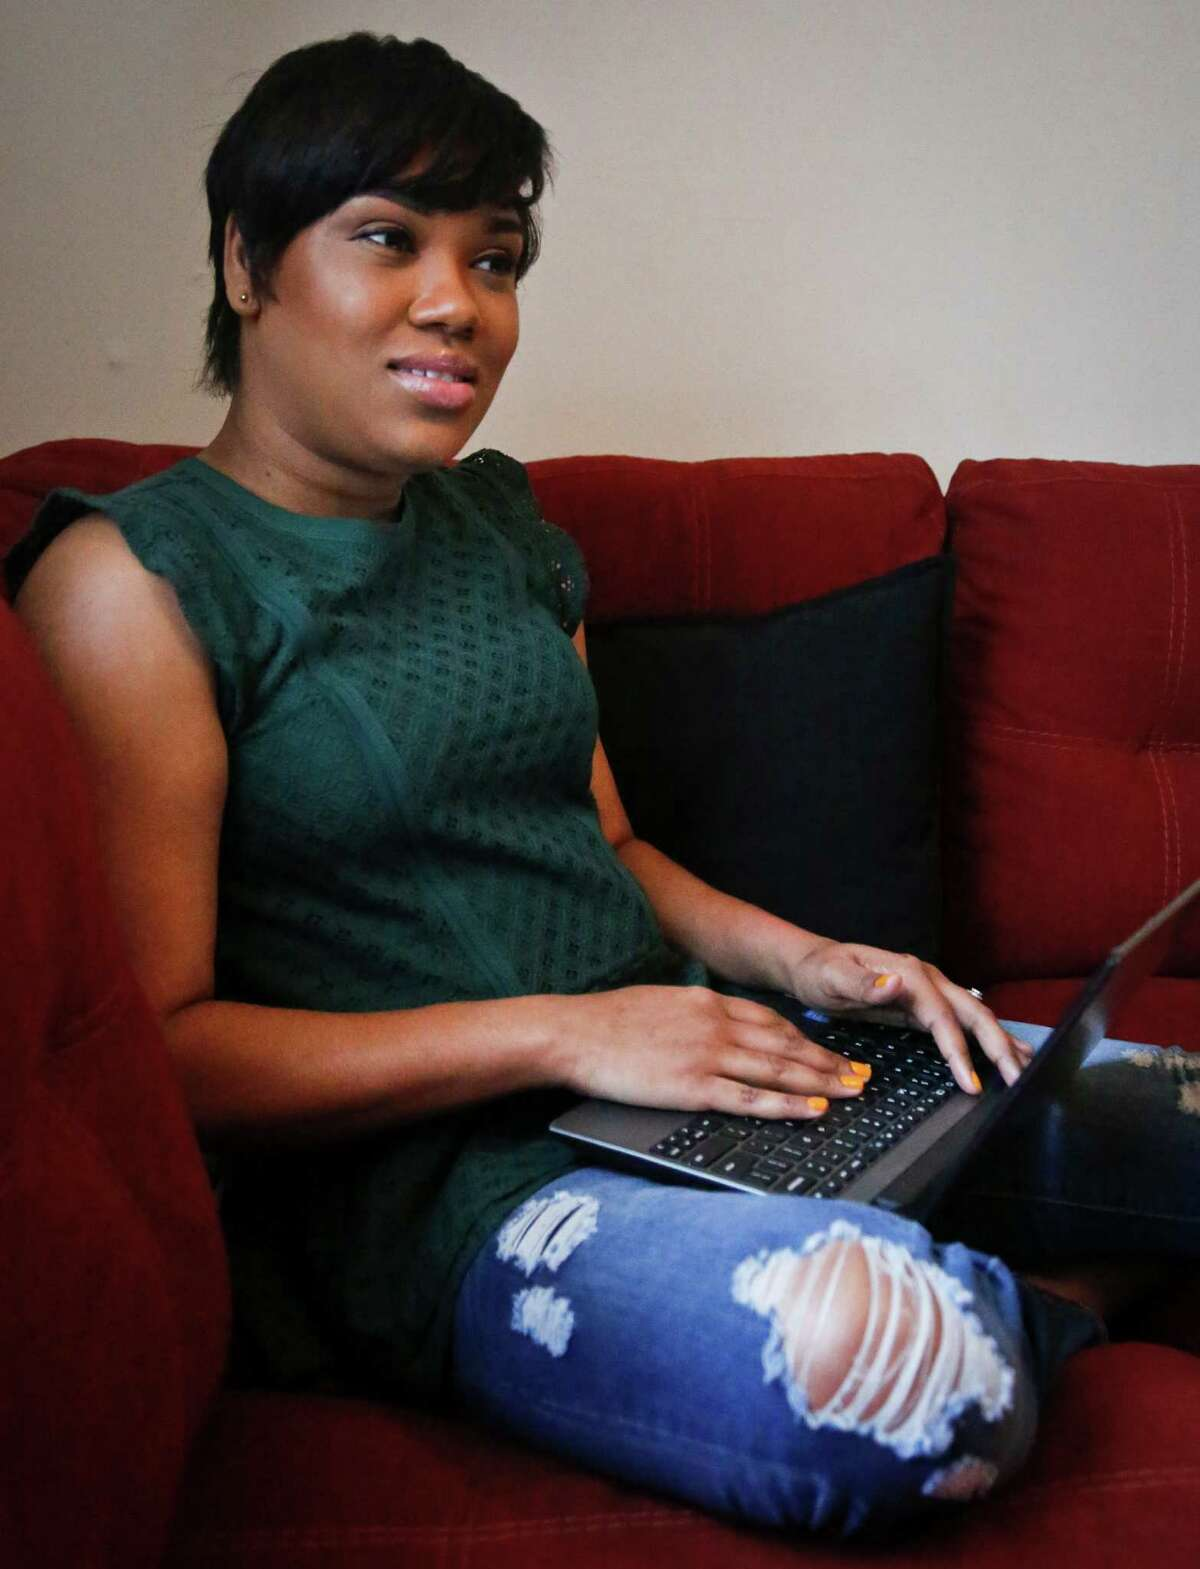 Jay Blessed, who previously broadcasted her own online radio show and listened to various unlicensed stations when she moved from Trinidad to Brooklyn more than a decade ago, prepare to update her blog which will interface her new podcast program, Sunday, April 24, 2016, in New York. Federal lawmakers and broadcasters are increasingly worried about pirate radio's presence in some cities as unlicensed broadcasters commandeer frequencies to play anything. (AP Photo/Bebeto Matthews)